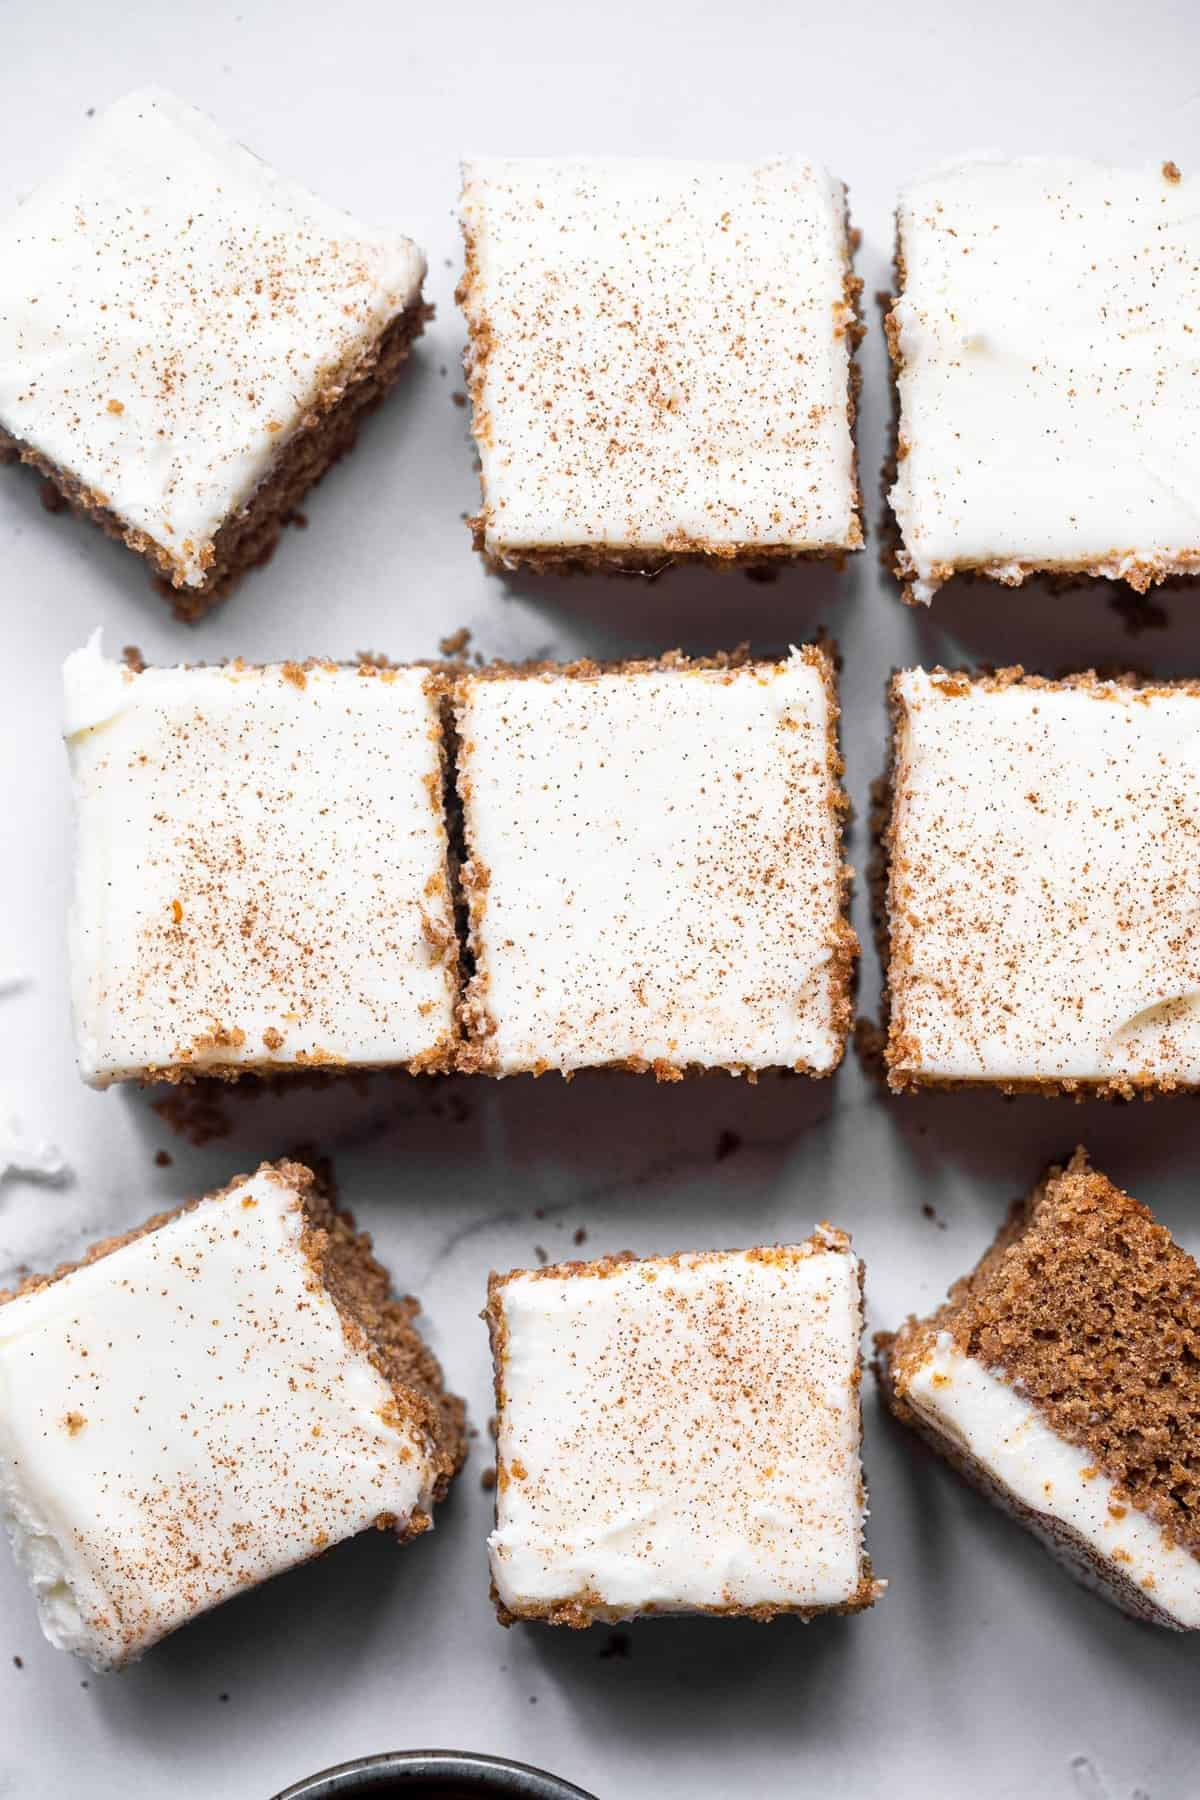 Gluten free gingerbread sliced into squares on a table